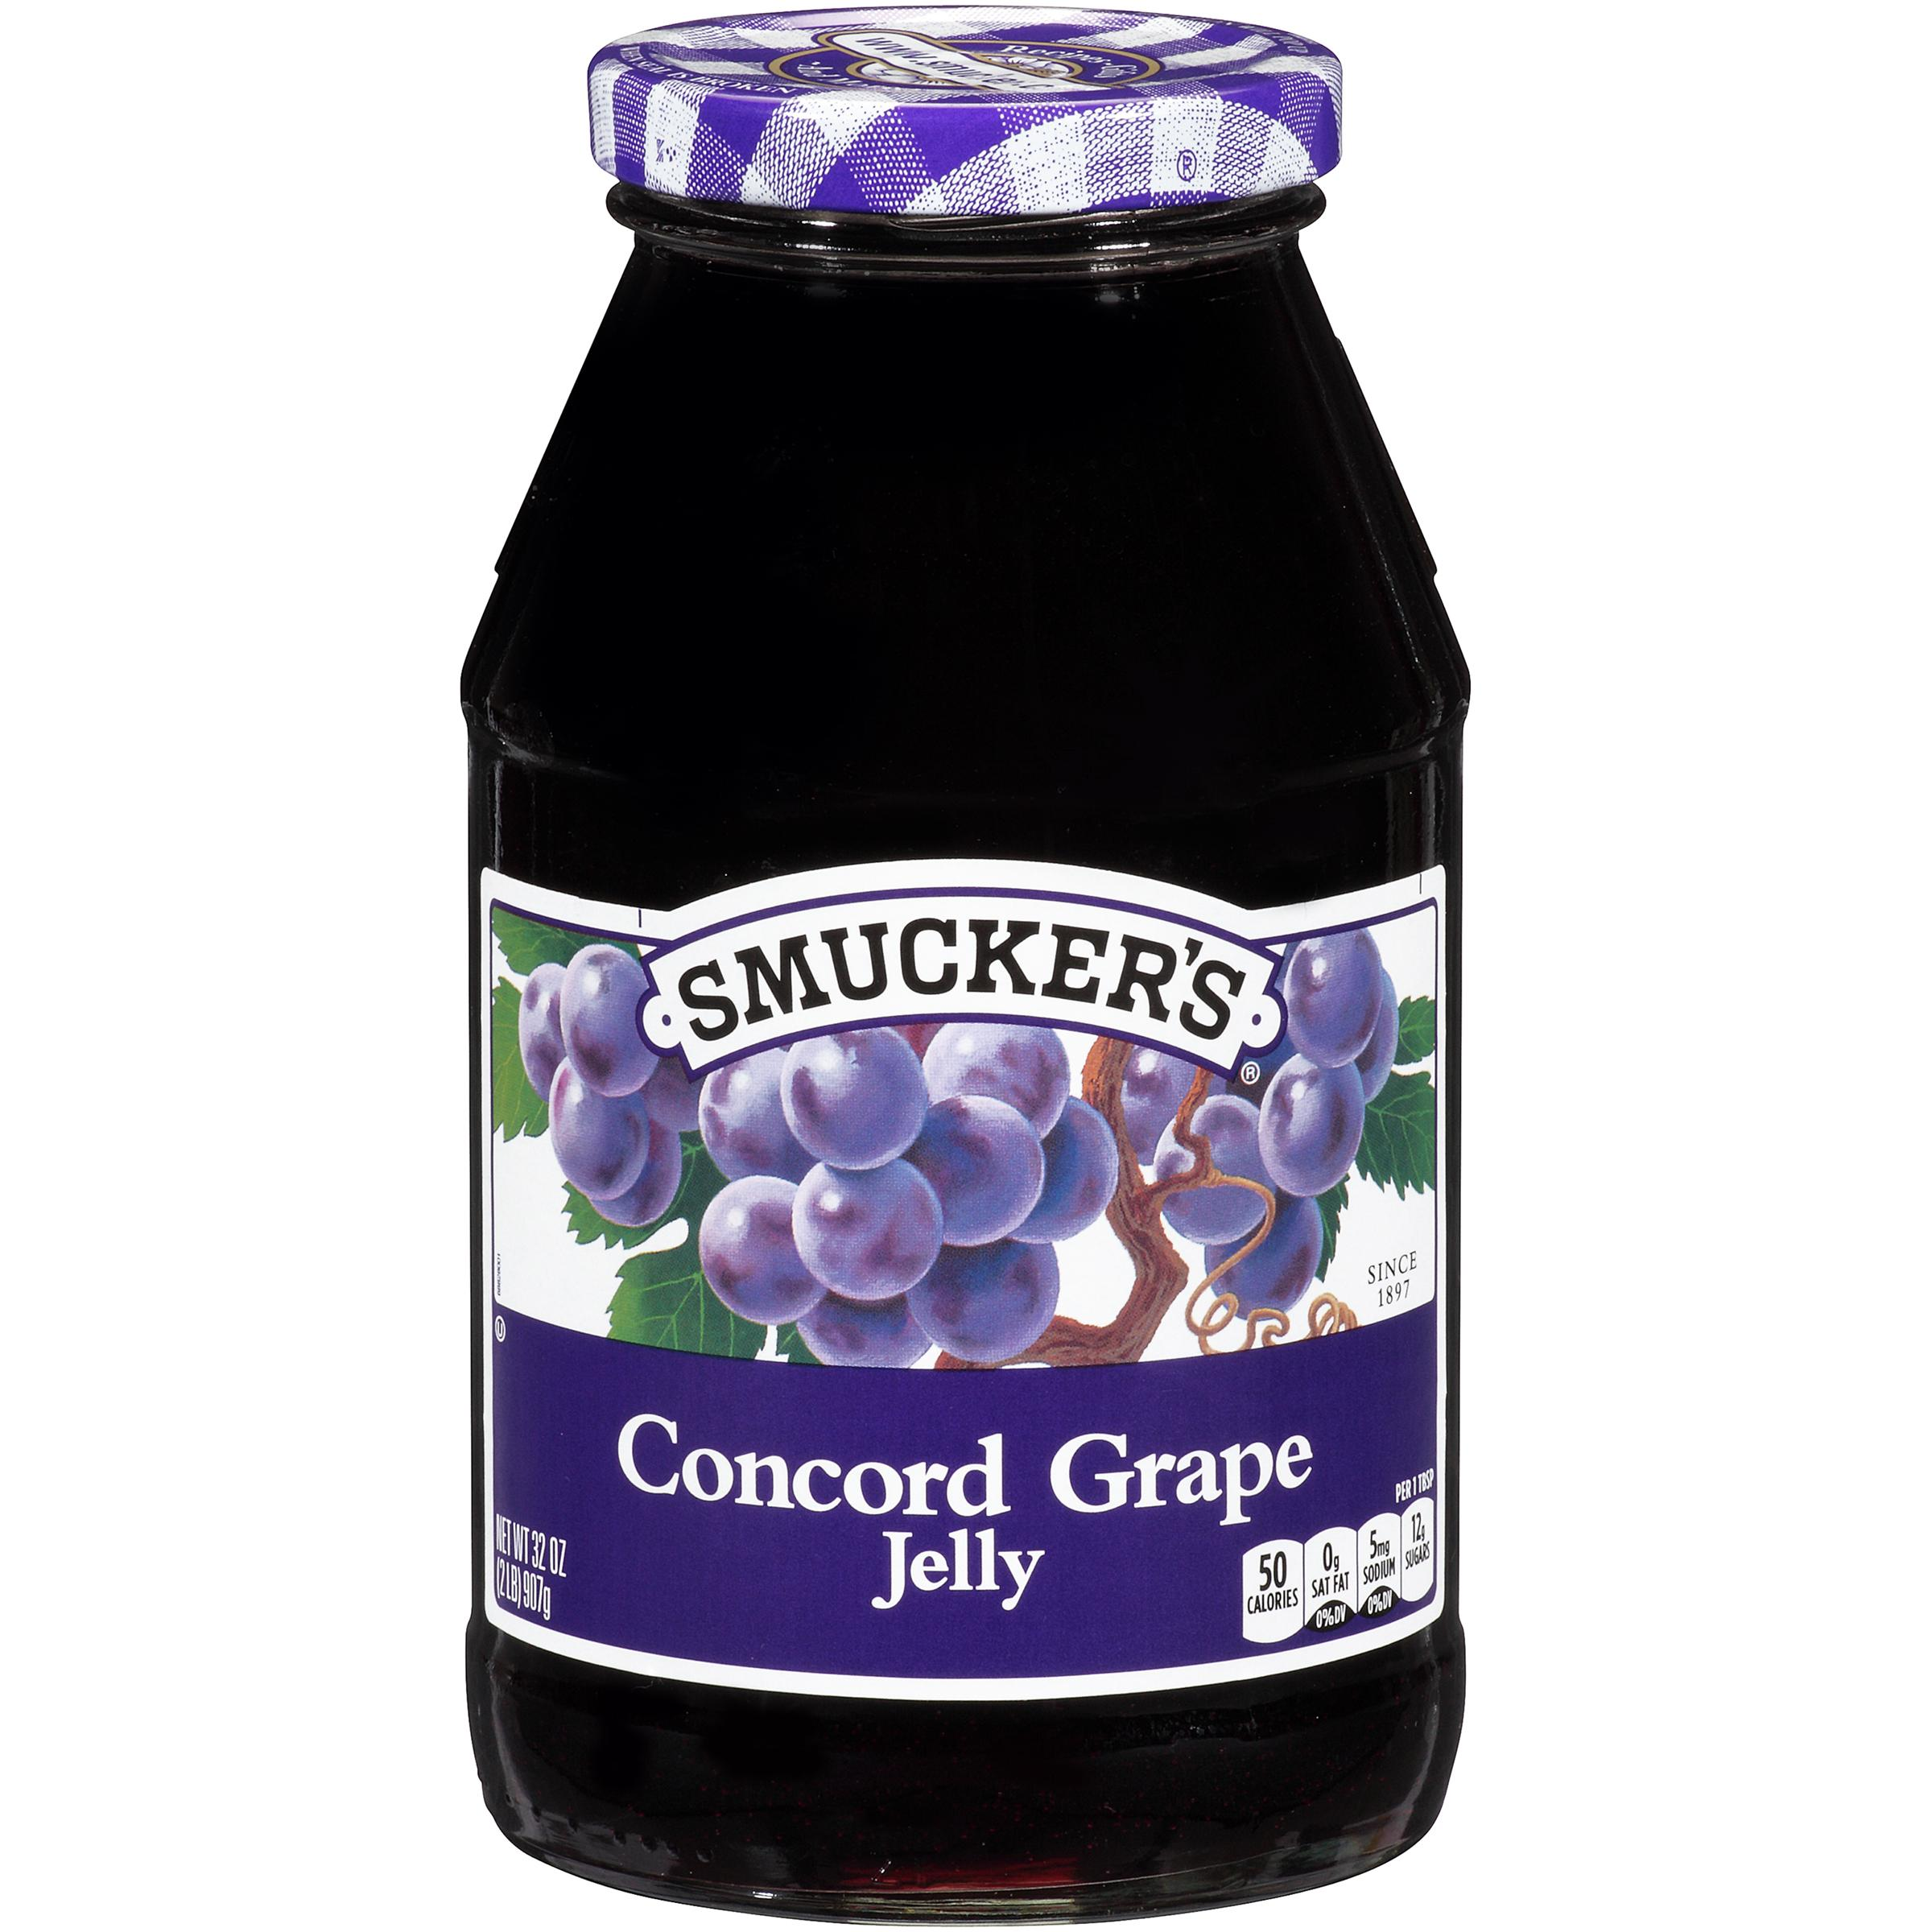 Smuckers grape jelly logo